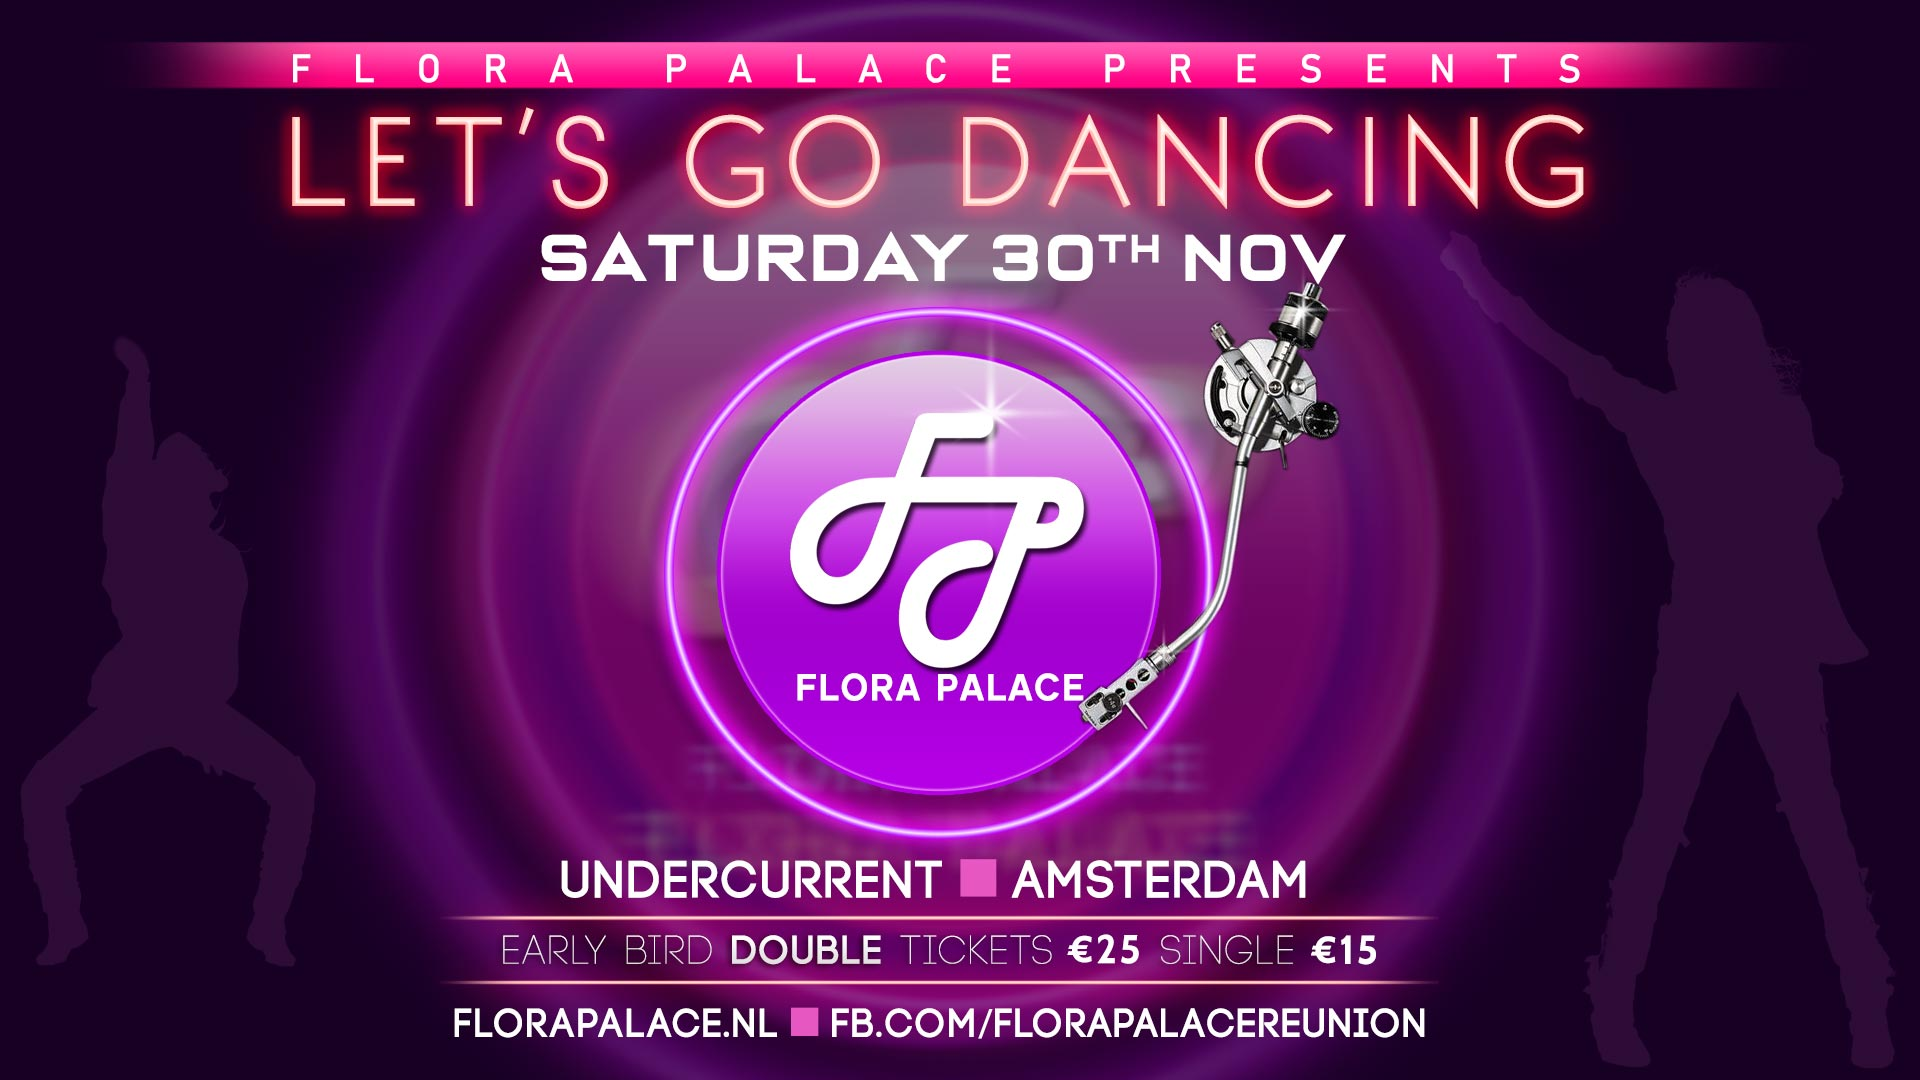 Flora-palace-presents-lets-go-dancing-early-birds